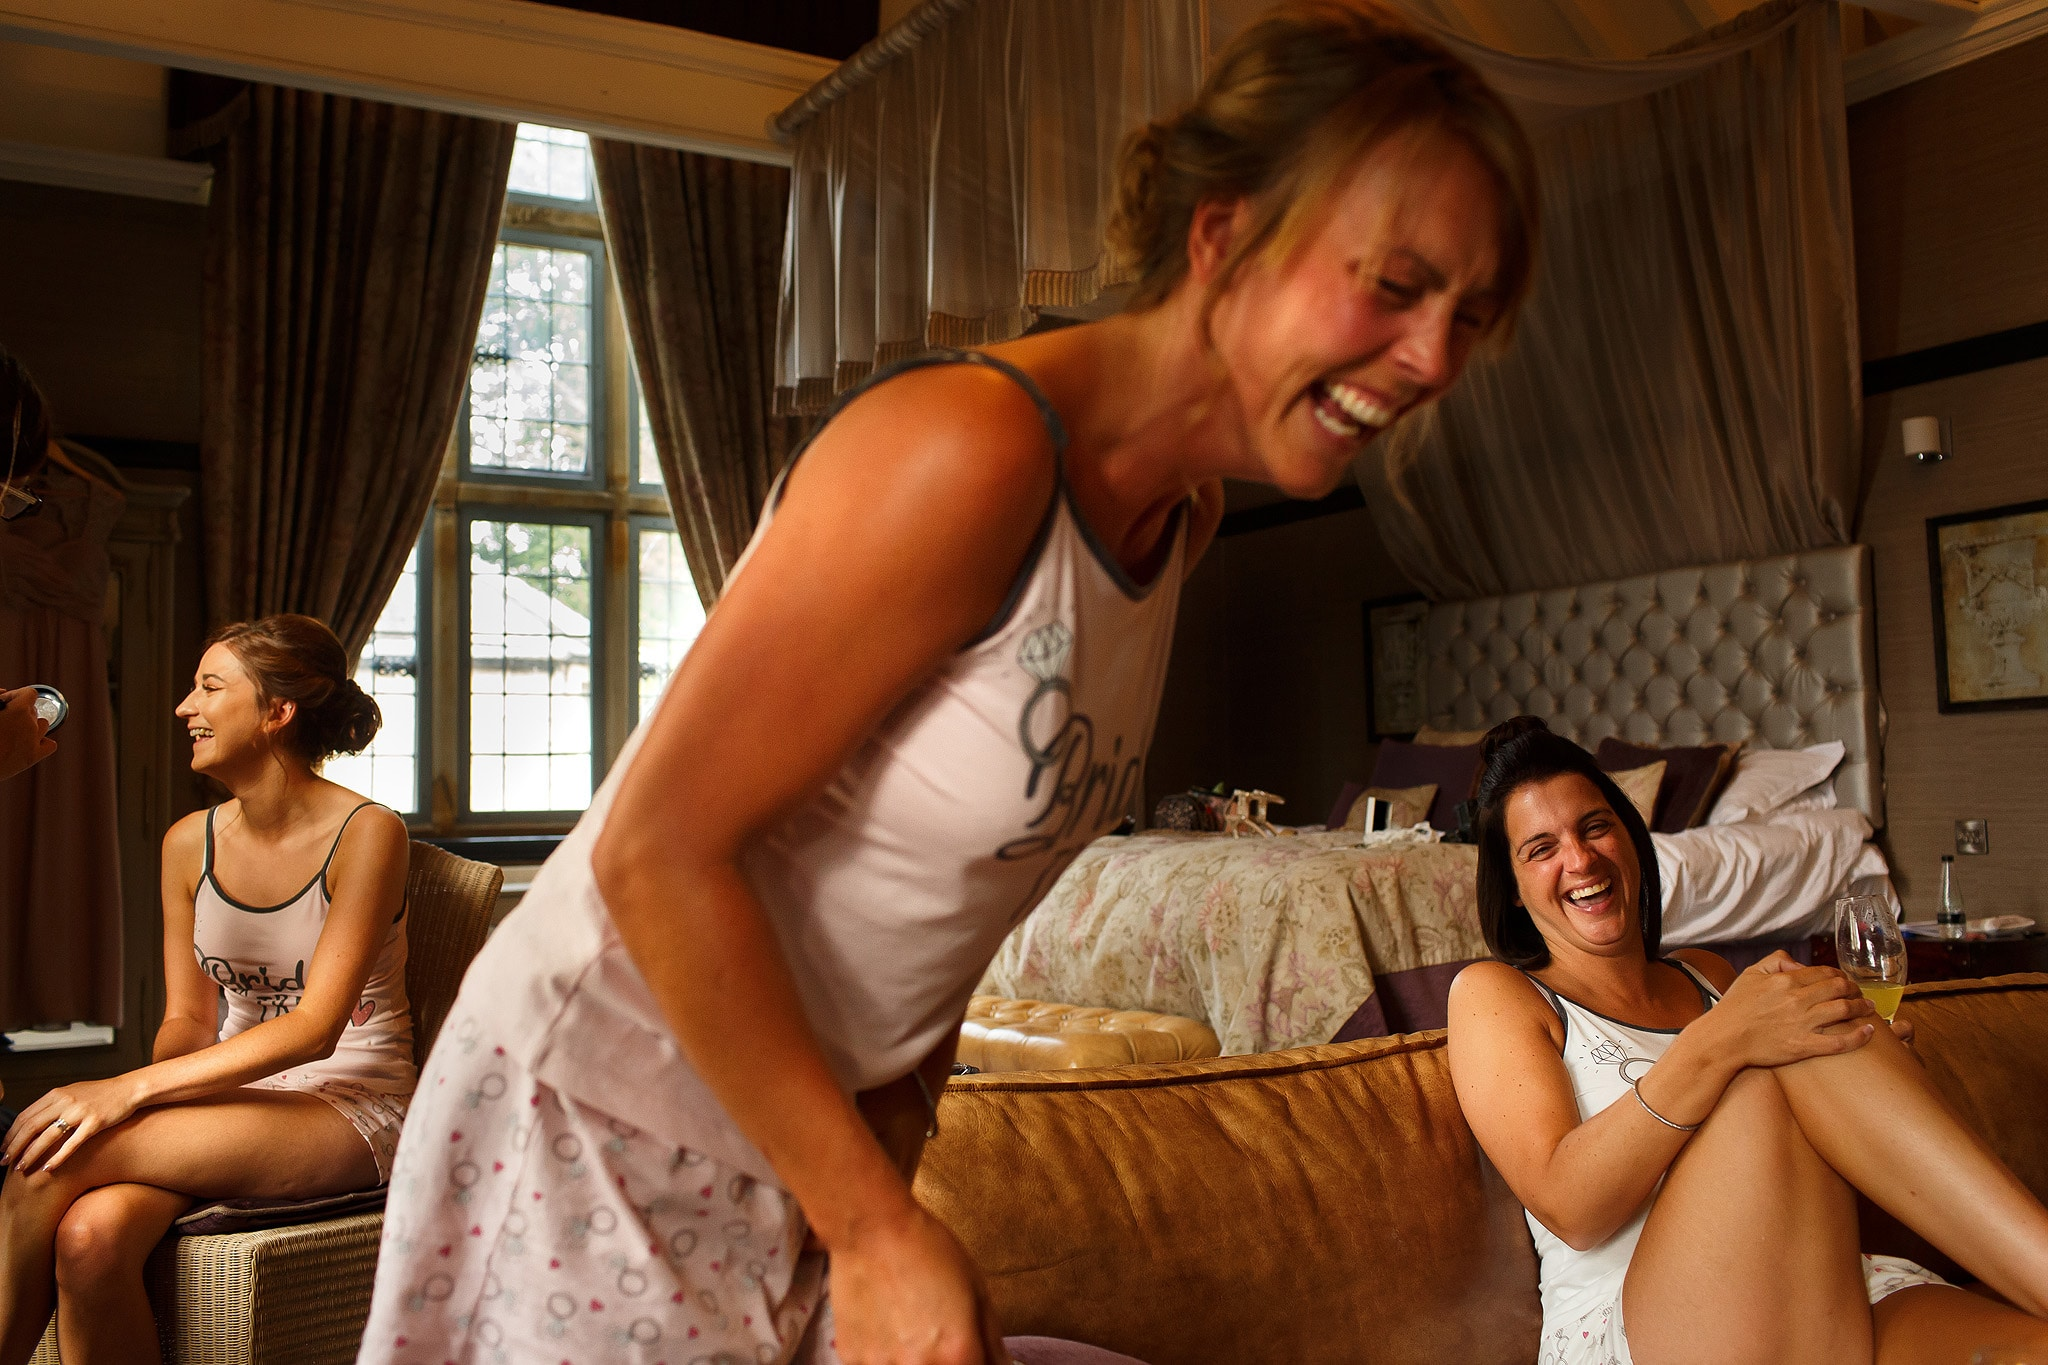 bridesmaids wearing matching pyjamas laughing